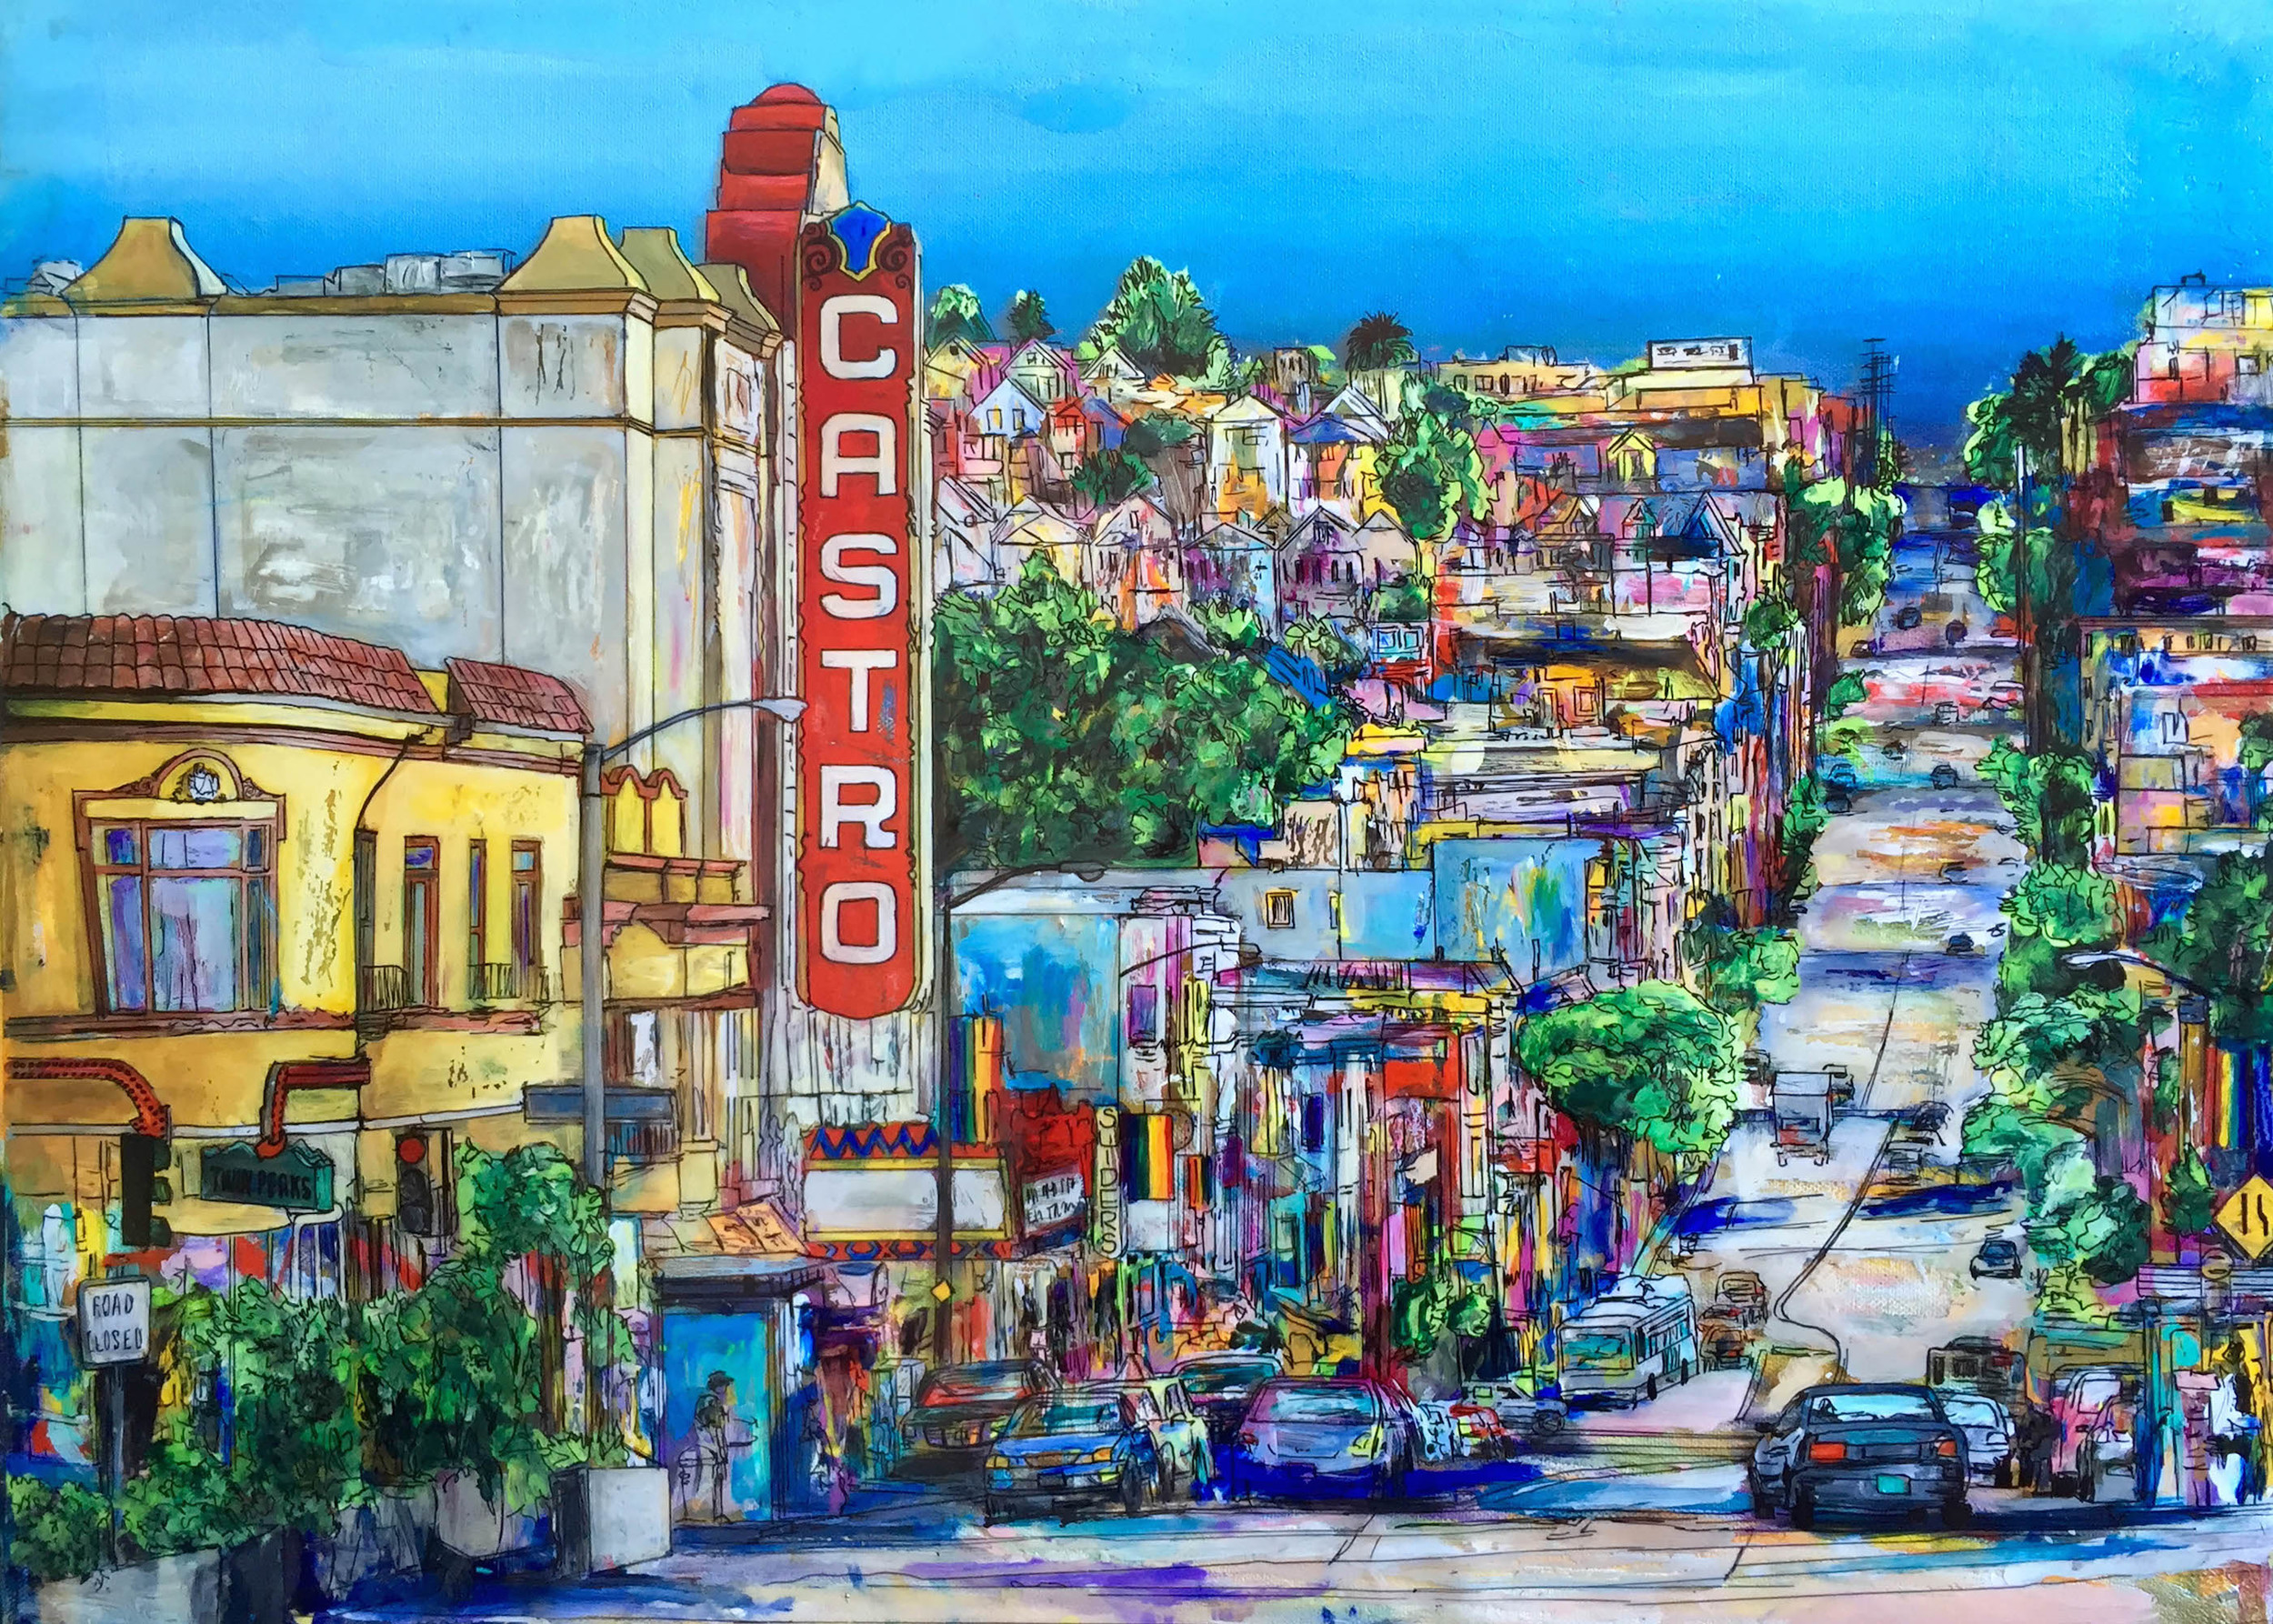 """THE CASTRO (SAN FRANCISCO)  18 x 24""""  Acrylic, acetate, ink, and epoxy resin on canvas  2016  PRINTS AVAILABLE / ORIGINAL SOLD"""